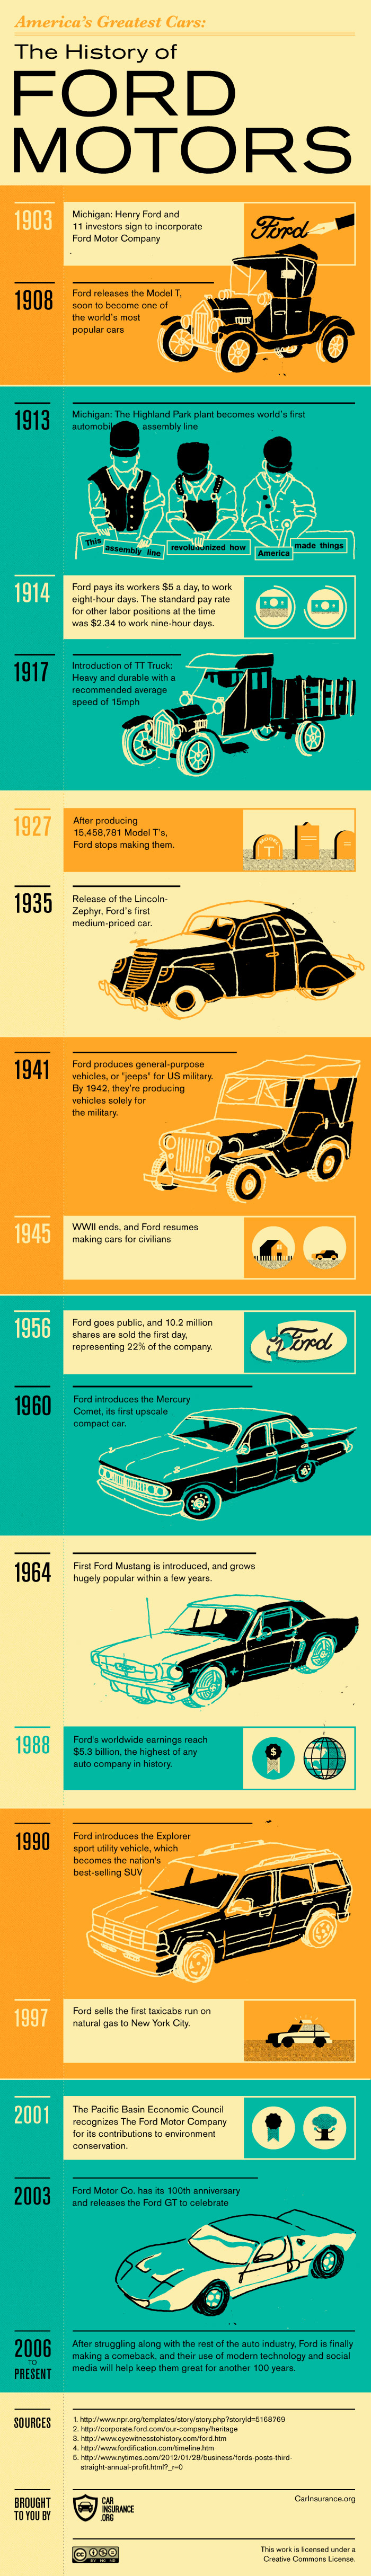 americas greatest cars the history of ford motors